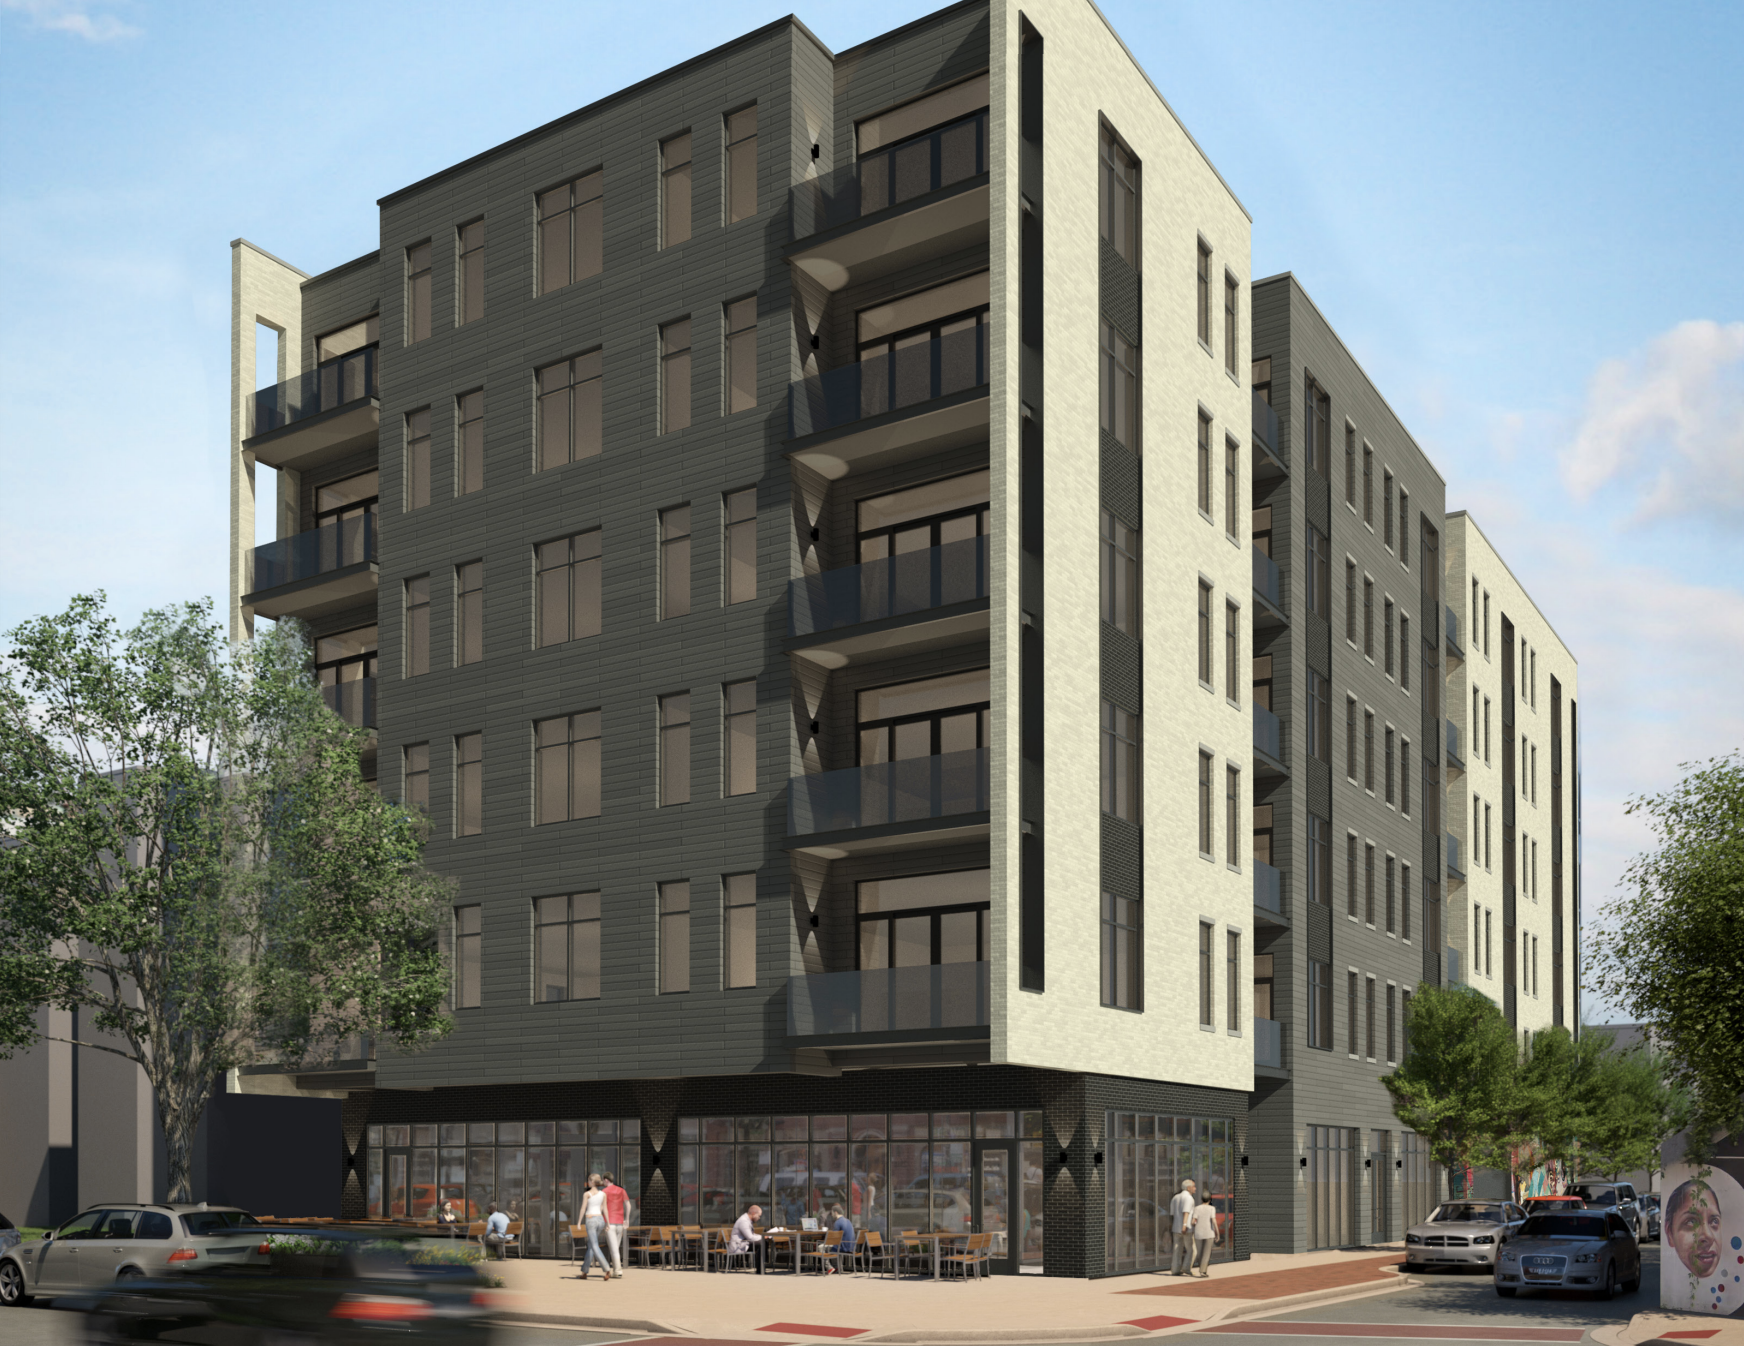 Rogers Park residents get first look at apartments replacing Heartland Cafe